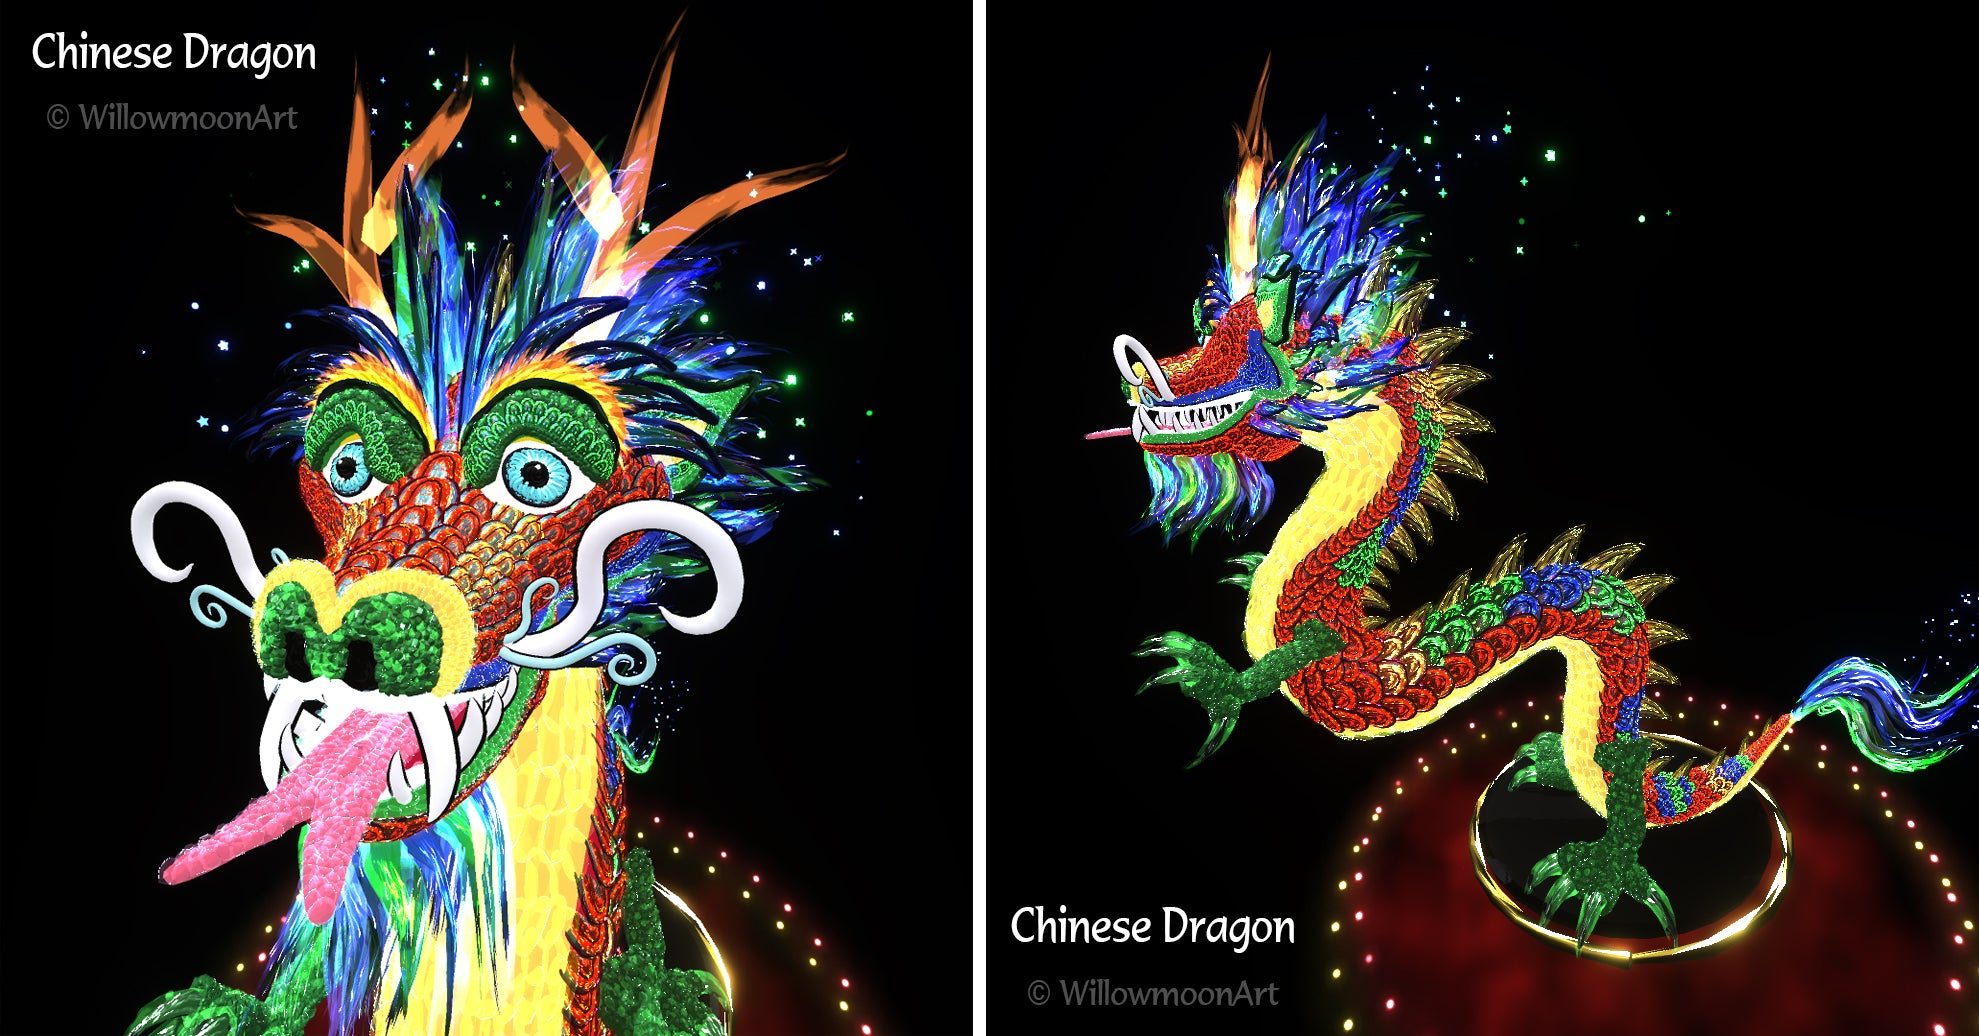 Chinese Dragon - Virtual Reality Art by Willowmoon Art